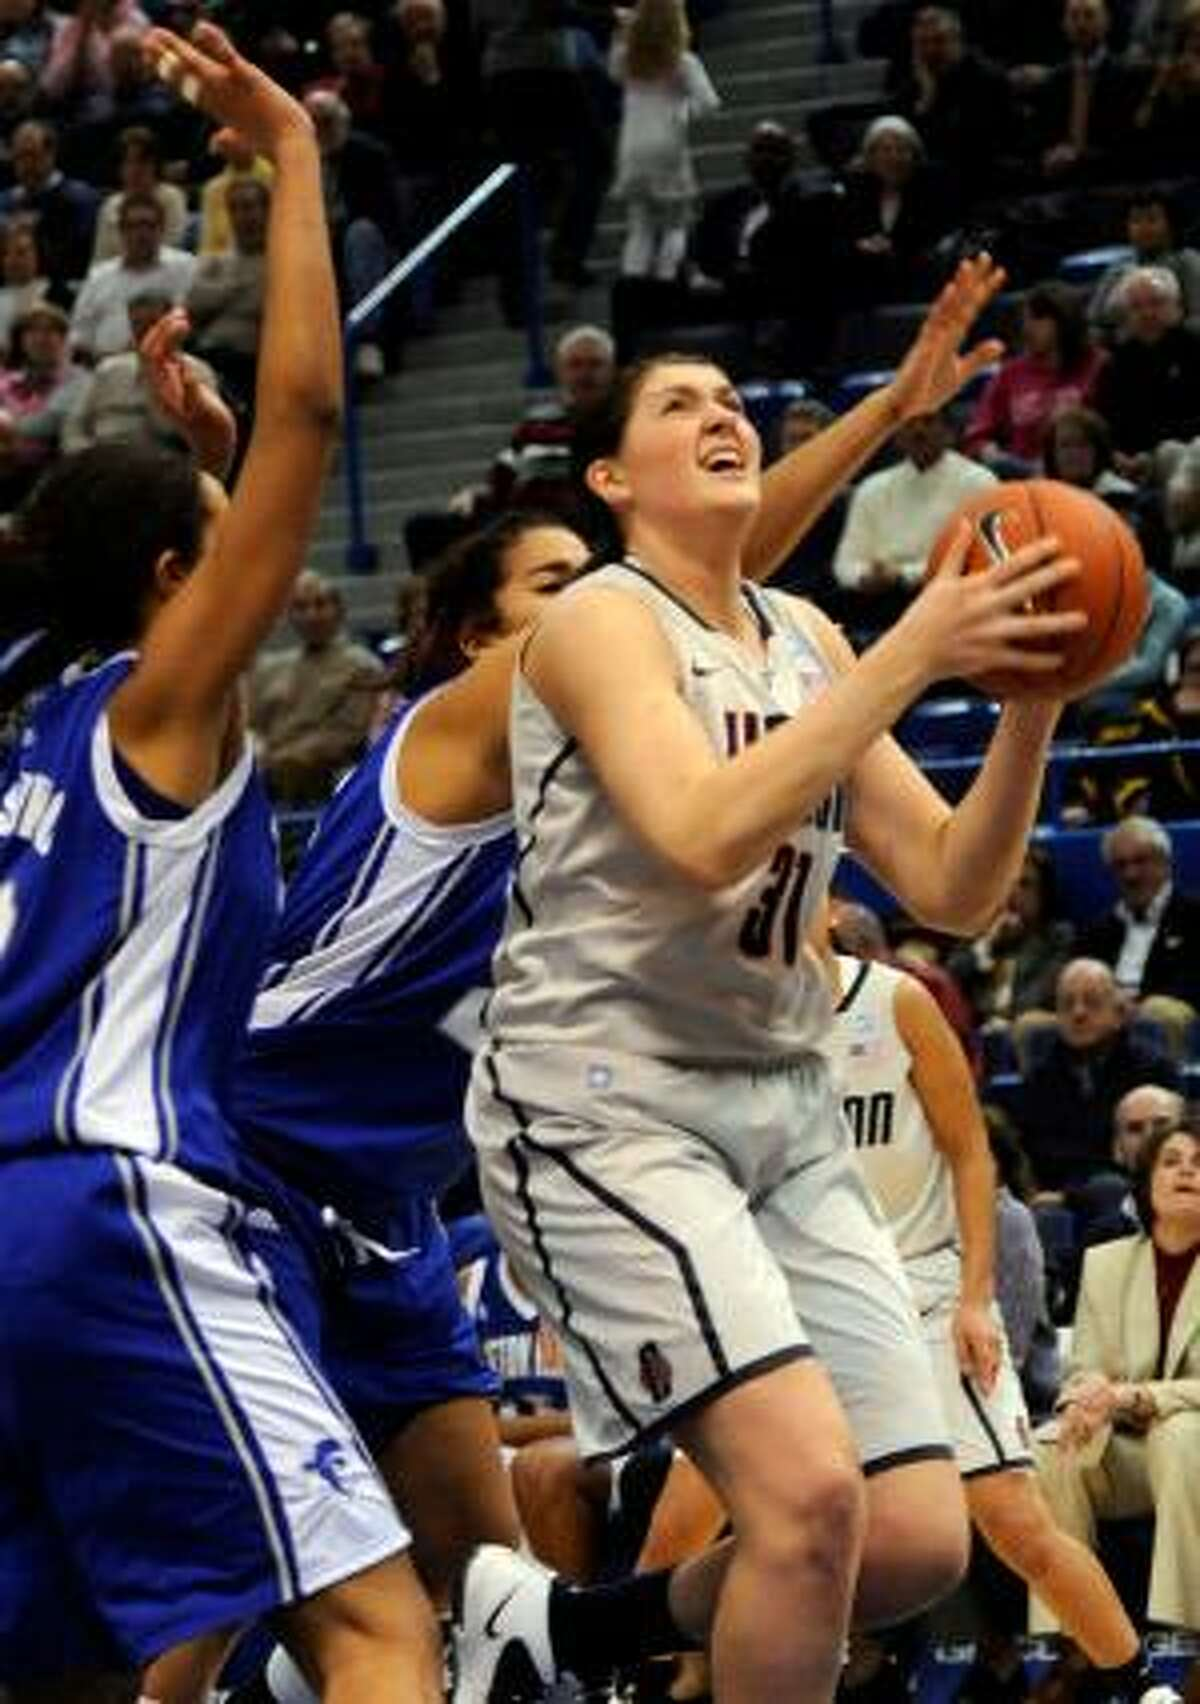 AP Connecticut's Stefanie Dolson comes in for a shot past Seton Hall defenders during the first half of Tuesday's game in Hartford. The Huskies won 80-59.